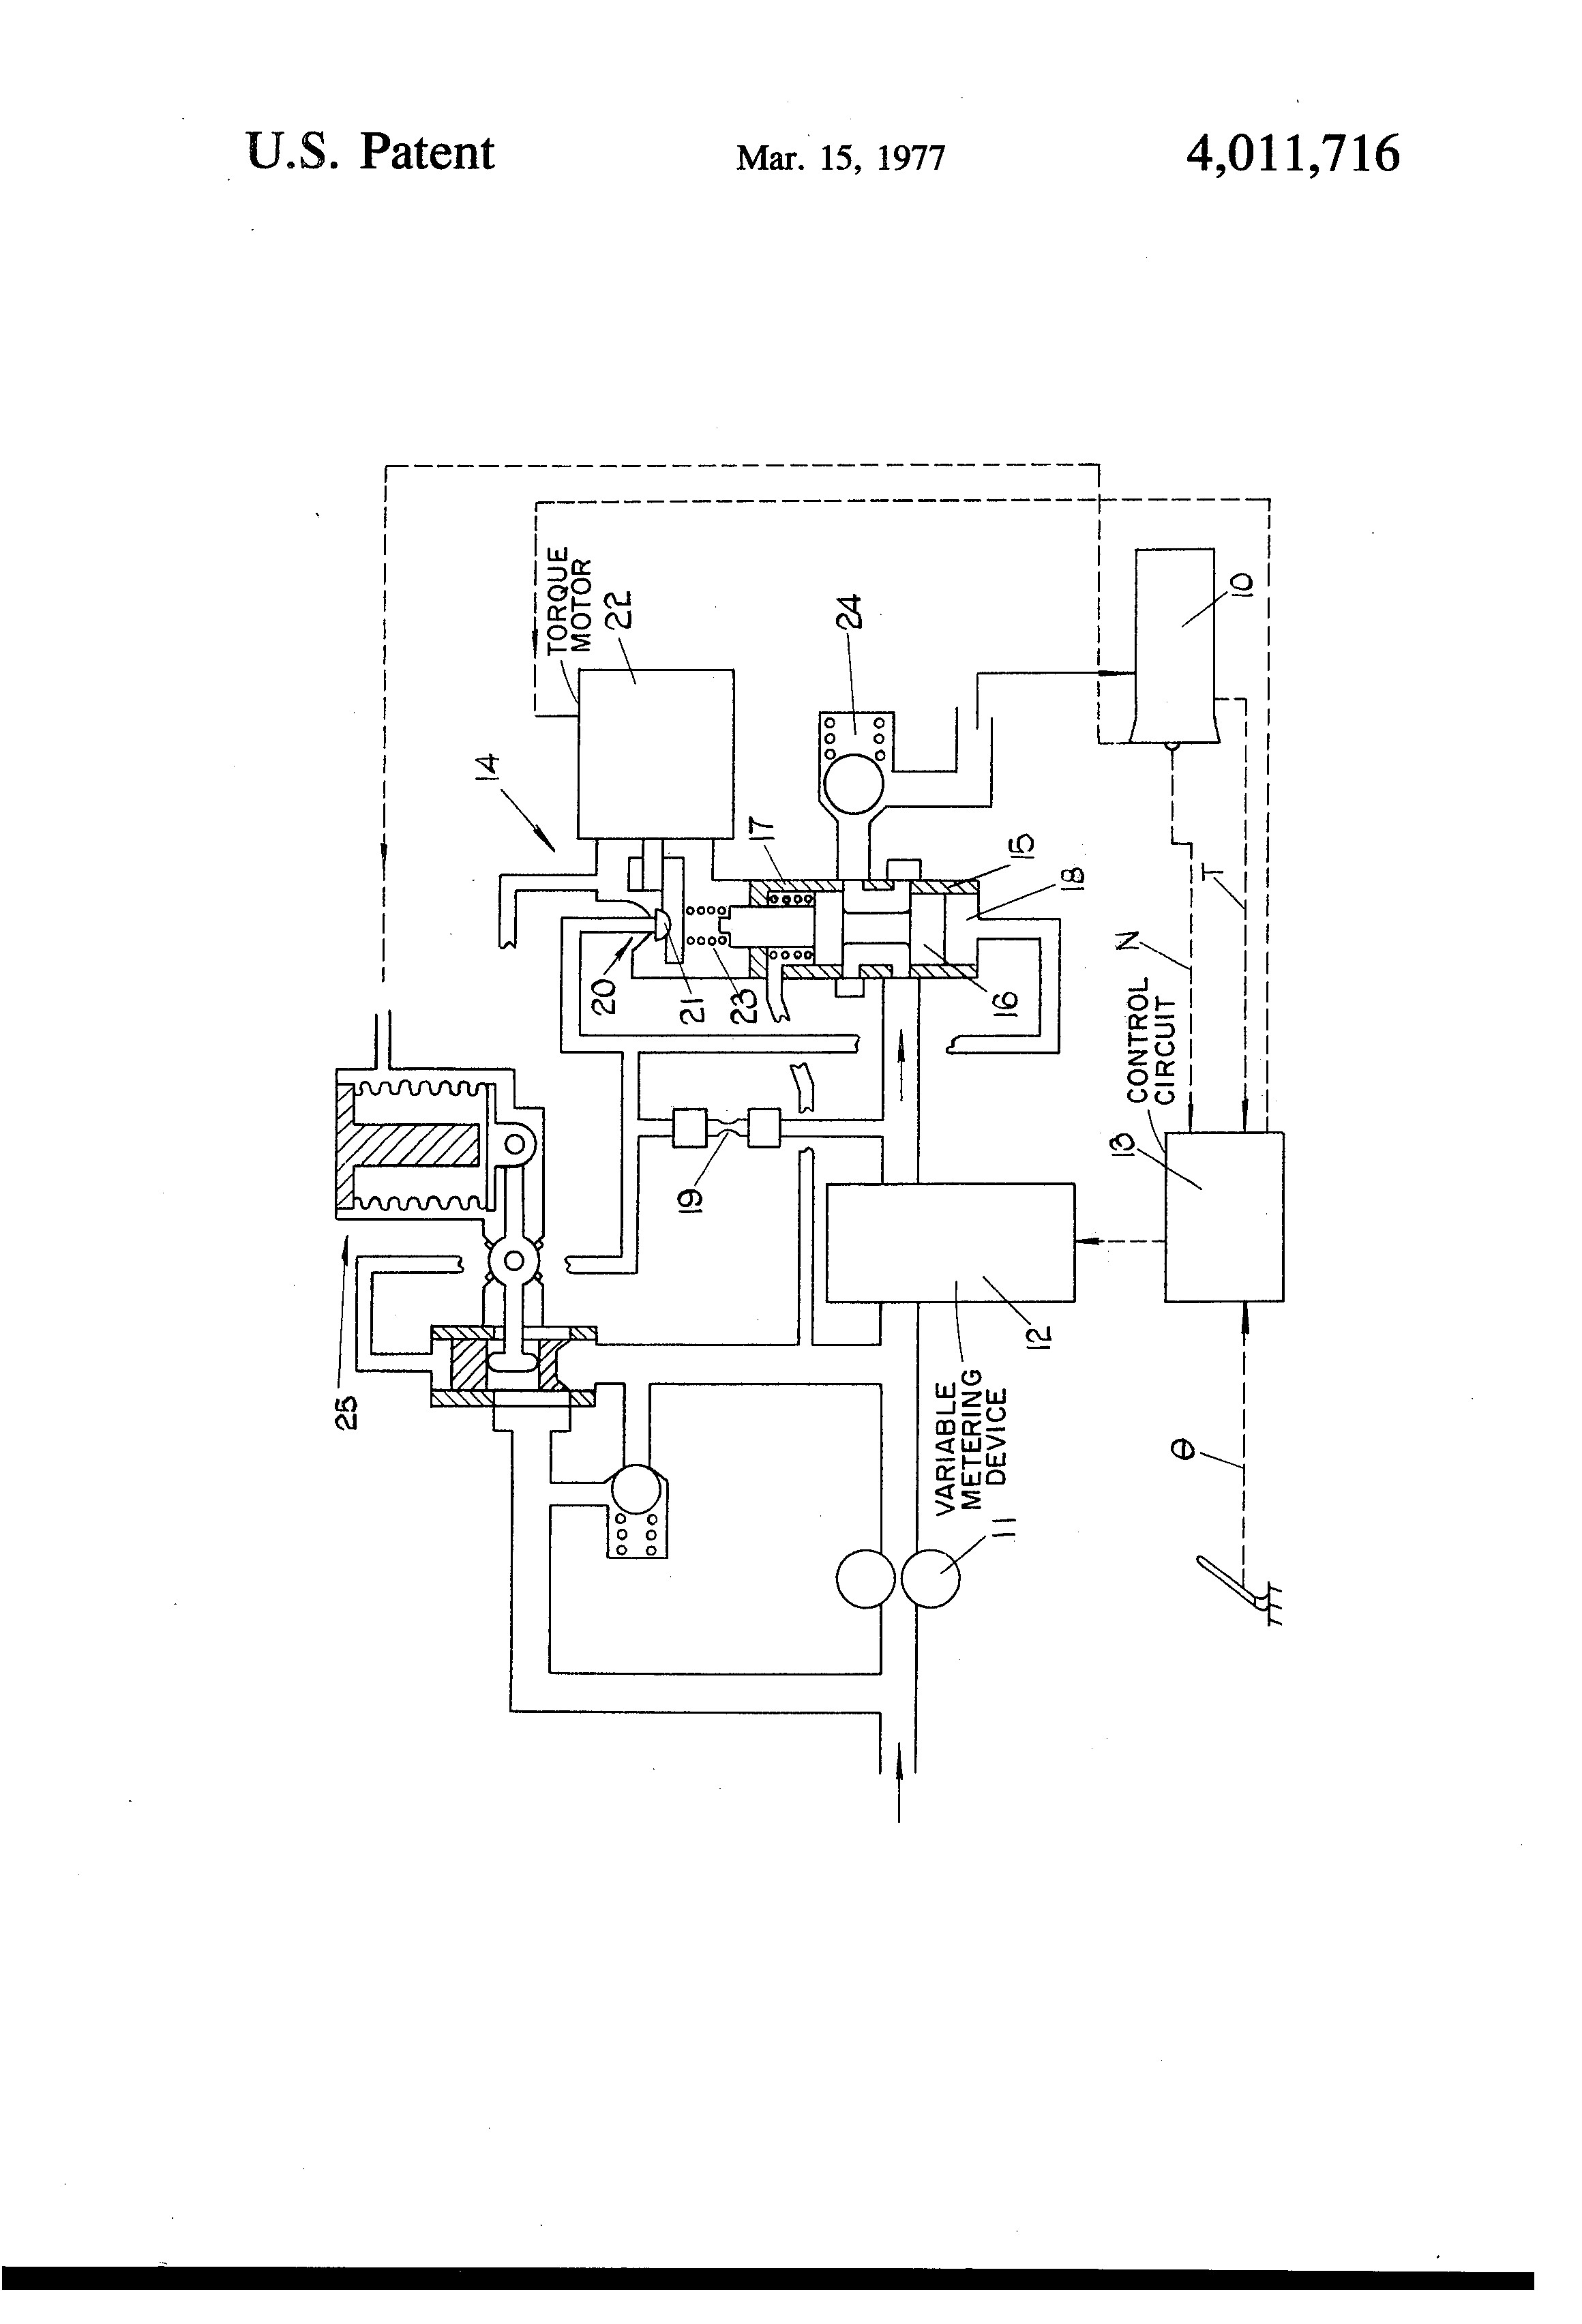 Gas Turbine Engine Diagram Patent Us Fuel Control System for Gas Turbine Engine Of Gas Turbine Engine Diagram